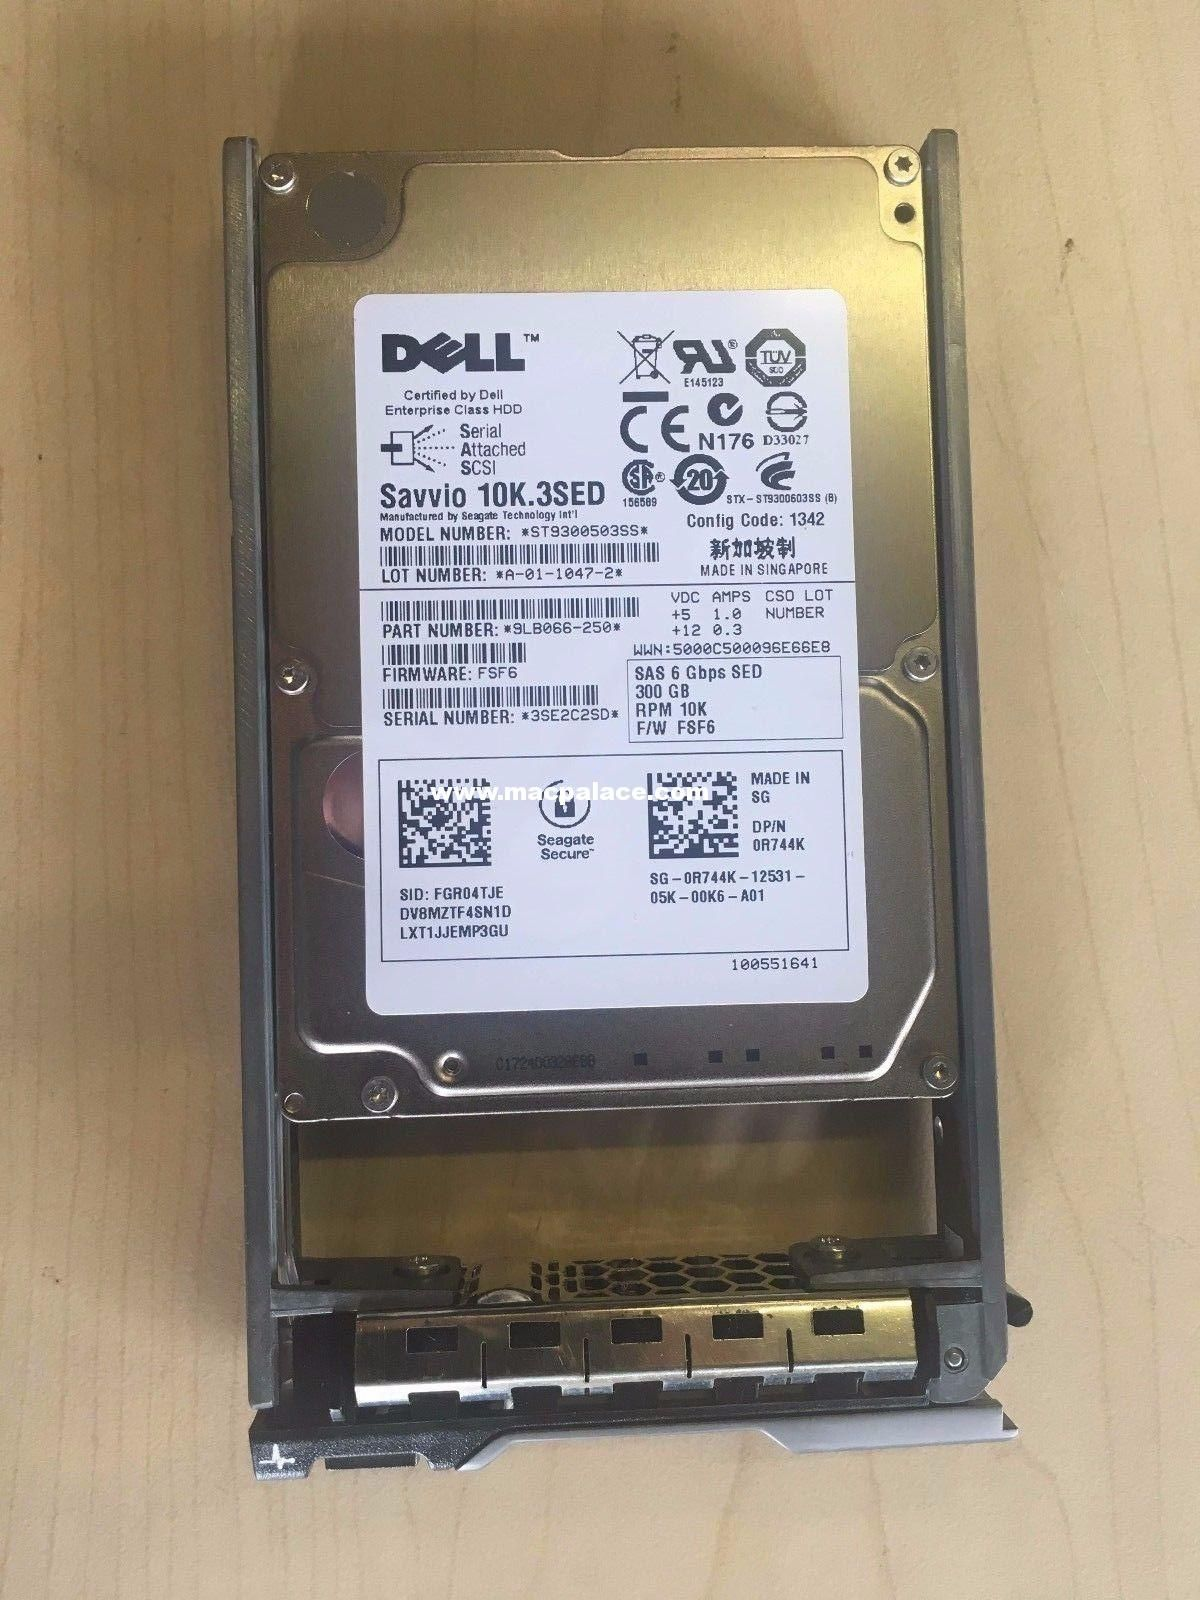 91 25inch Hdd Orico Hard Drive Enclosure 25 Inch Seagate S300 Pc Hardisk 120gb Ssd Internal Solid State Dell Self Encrypting R744k 300gb 10000rpm Sas 6gbits 16mb Buffer With Tray For